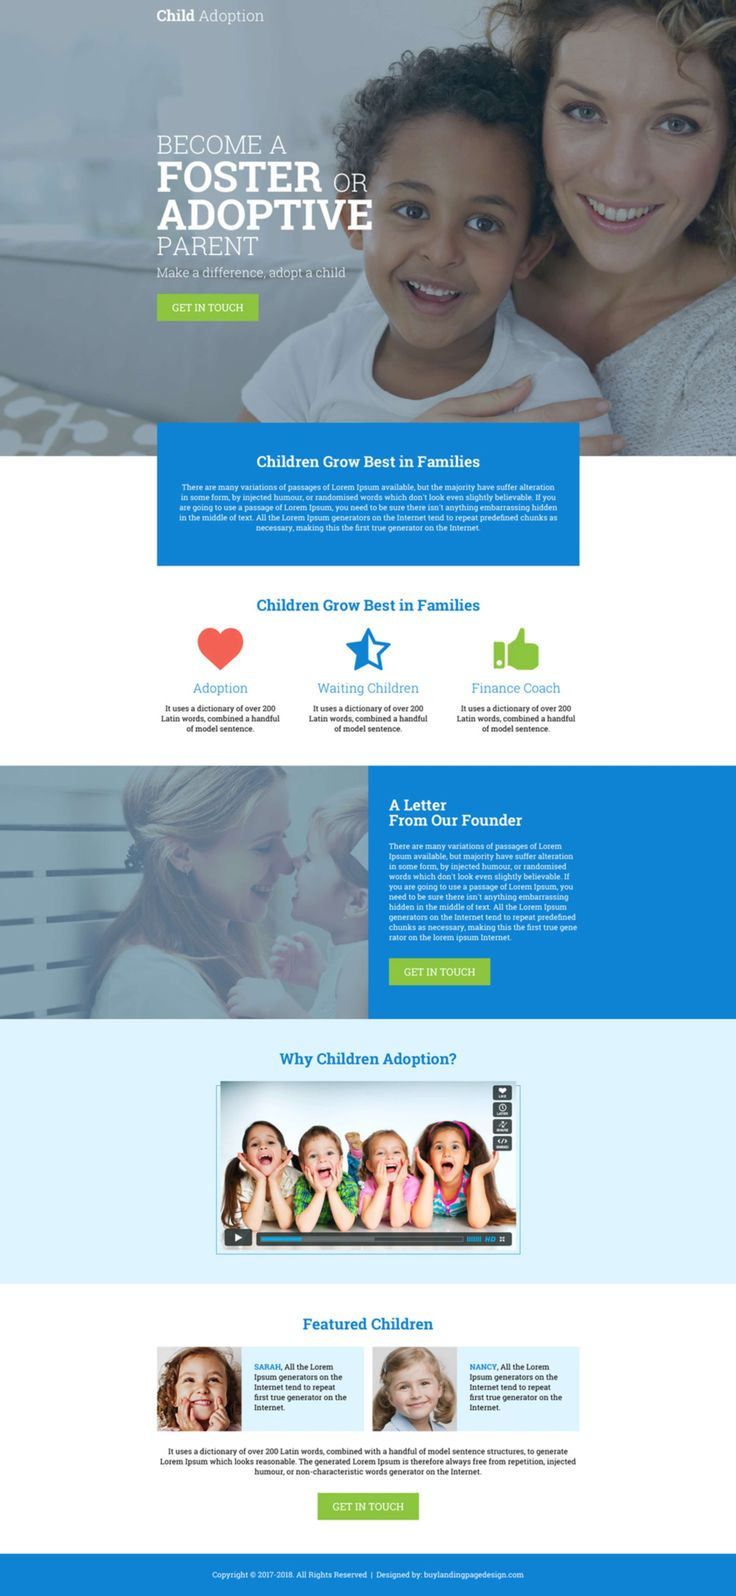 Child adoption and pet care agency clean and converting landing page designs by Mrinal Mahanti on The Dots.